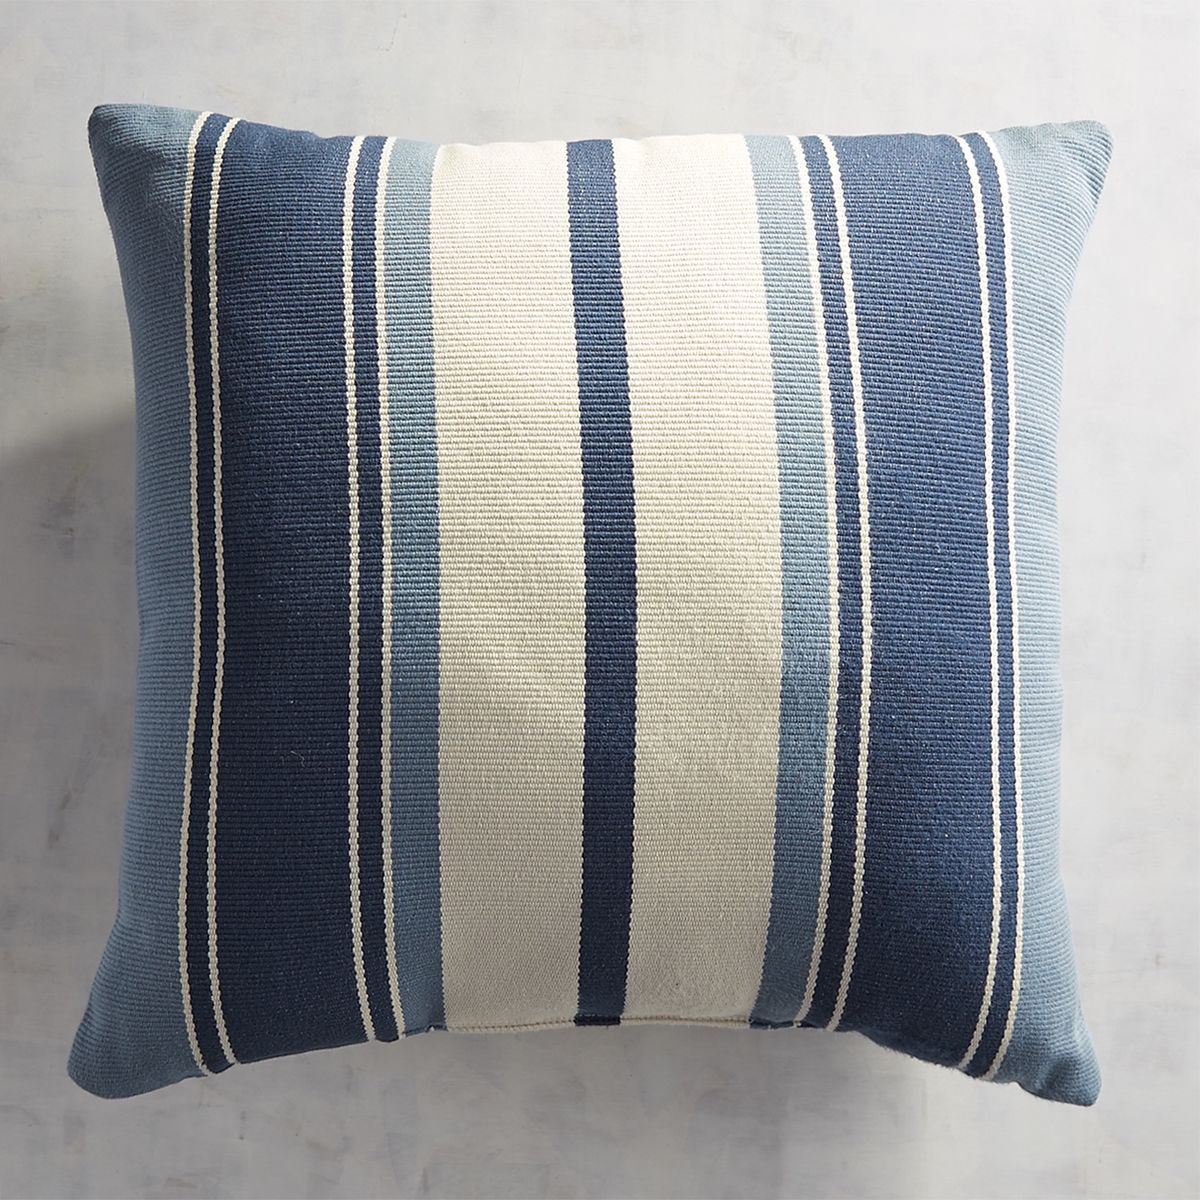 woven-striped-pillow